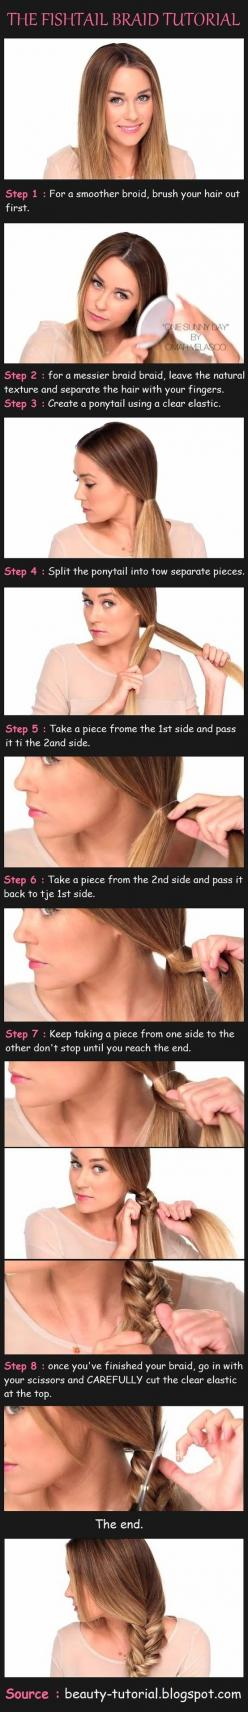 After living through this fad in the 90s, and bemoaning that I'd never have hair as cool as the Babsitter's Club, I FINALLY figured out the fishtail braid in the year 2013. Thank you, Lauren Conrad.: Fishtail Braid Tutorials, Hairstyles, Hair Styl